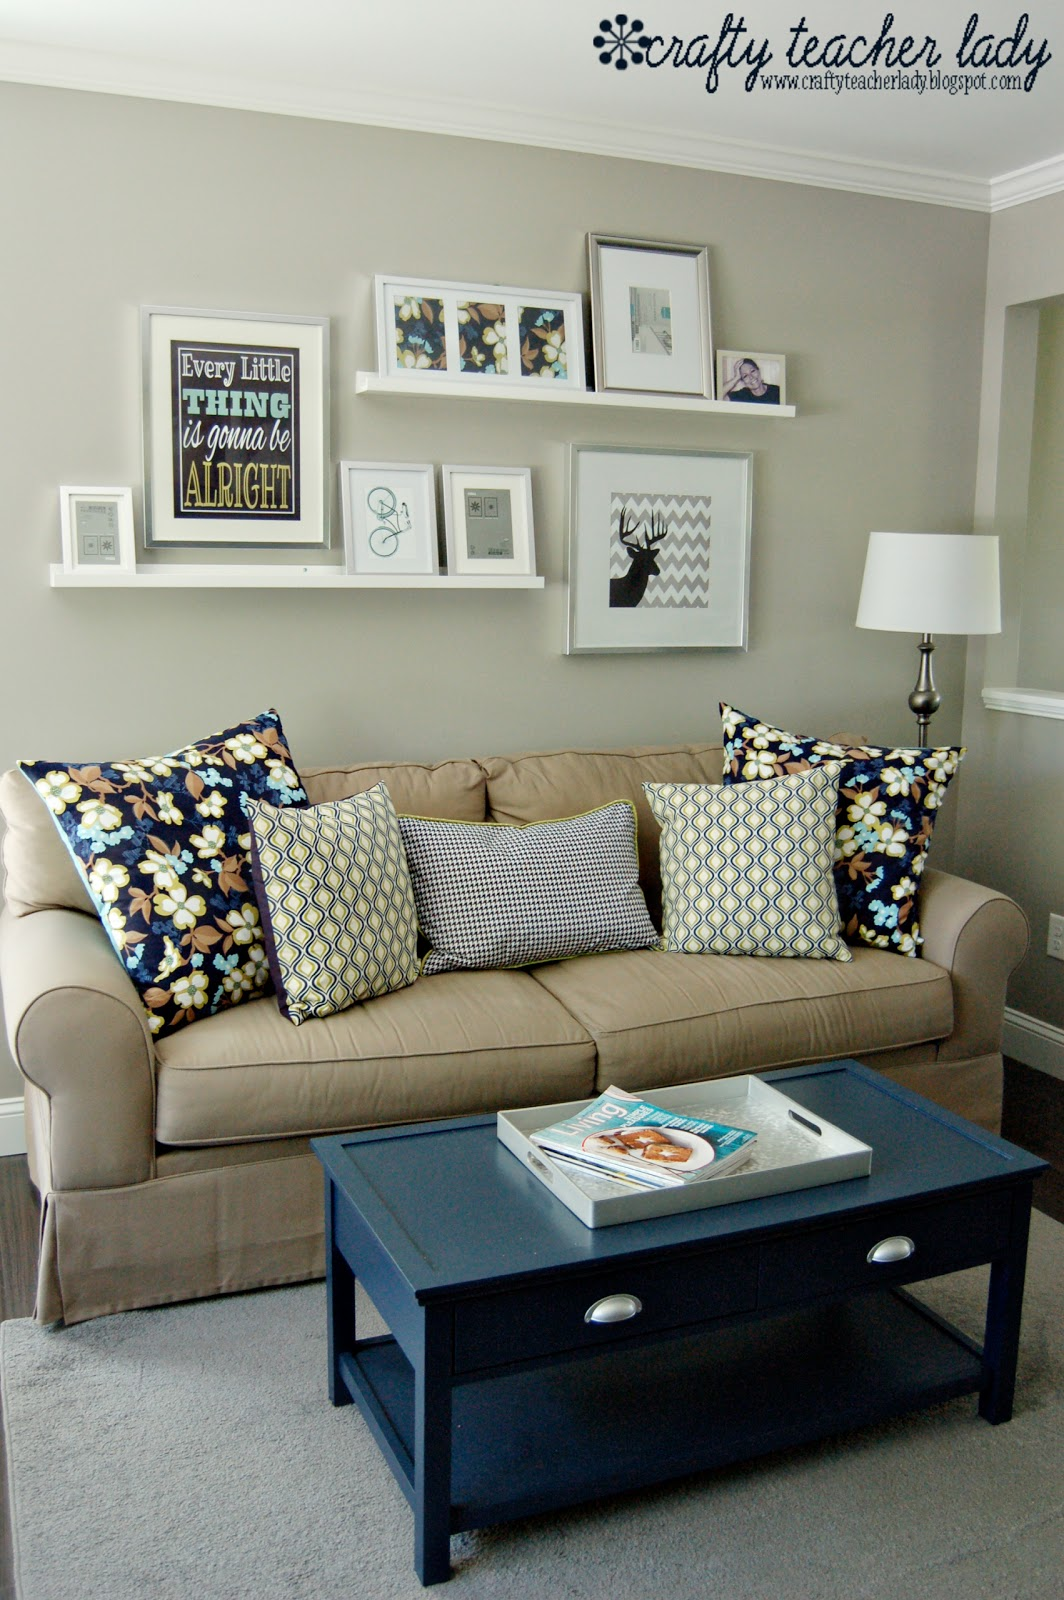 Wall Decoration In Rooms : Crafty teacher lady coffee table makeover